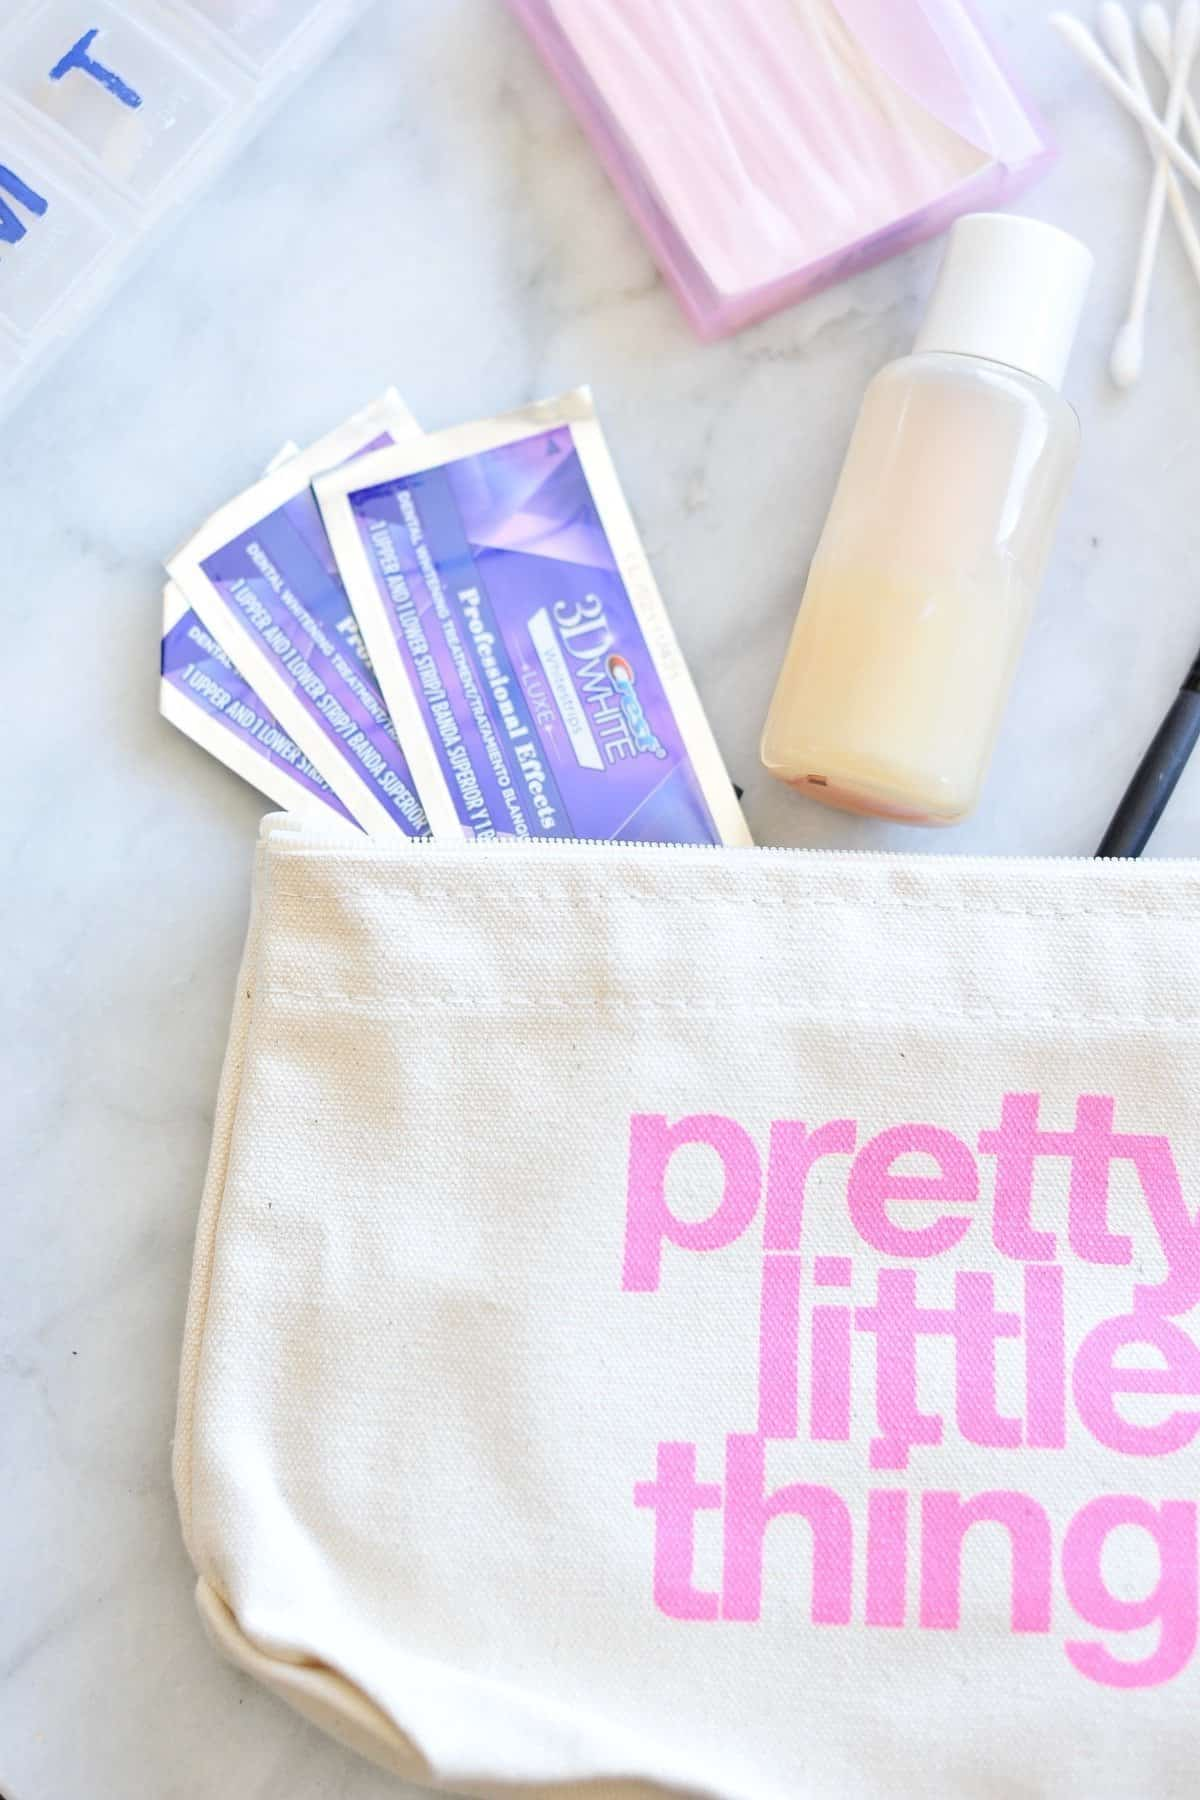 crest white strip packing tips - best beauty products to pack - My Style Vita - @mystylevita